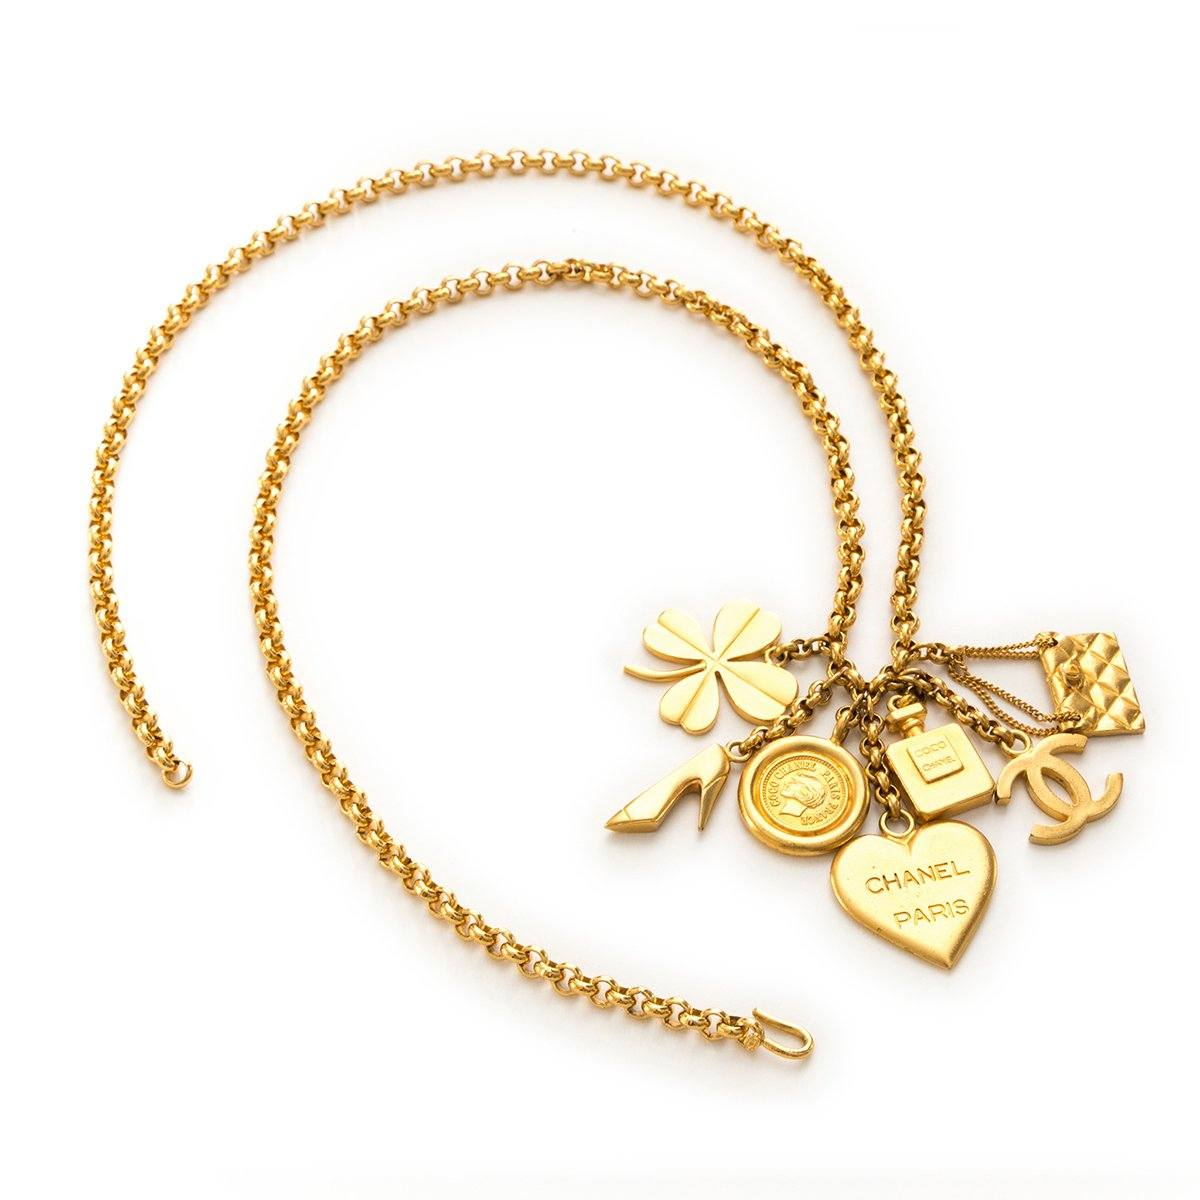 76f367d618f37 Vintage Chanel Gold Plated Charm Chain Necklace